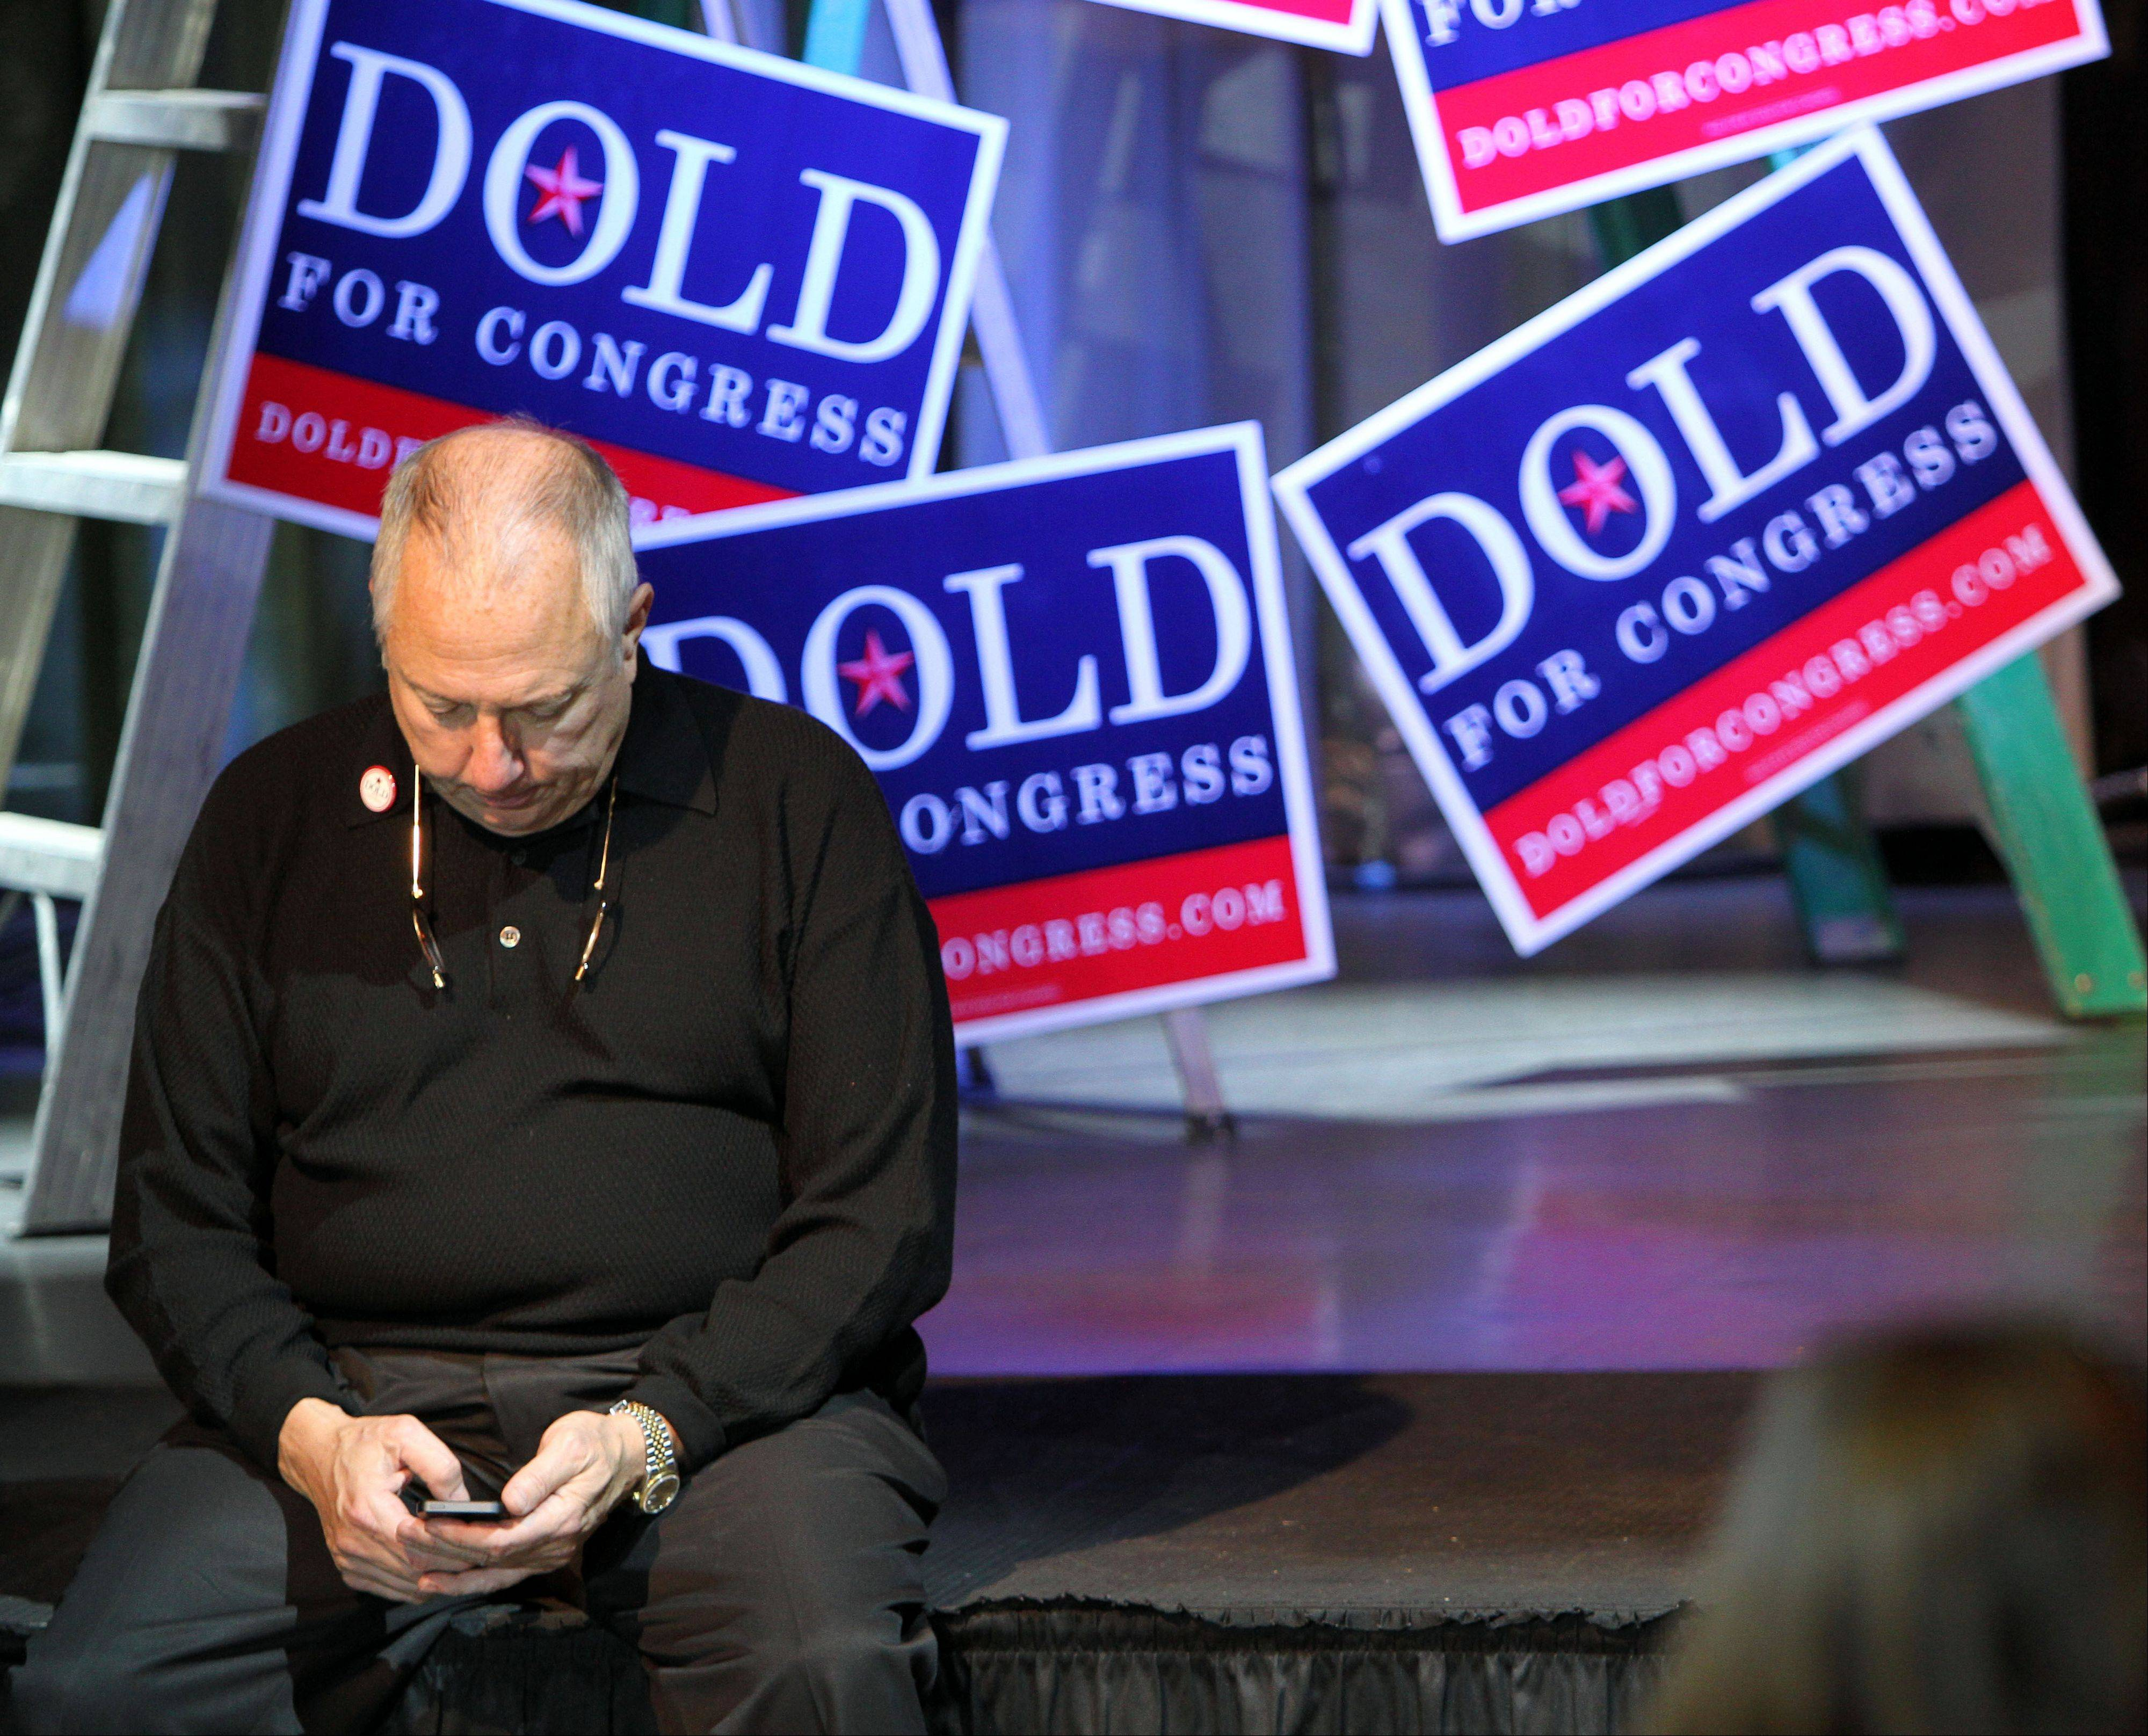 Dold supporter Richard Stein of Glenview watches the election returns on his phone at Dold headquarters in Lincolnshire at Viper Alley Tuesday night.